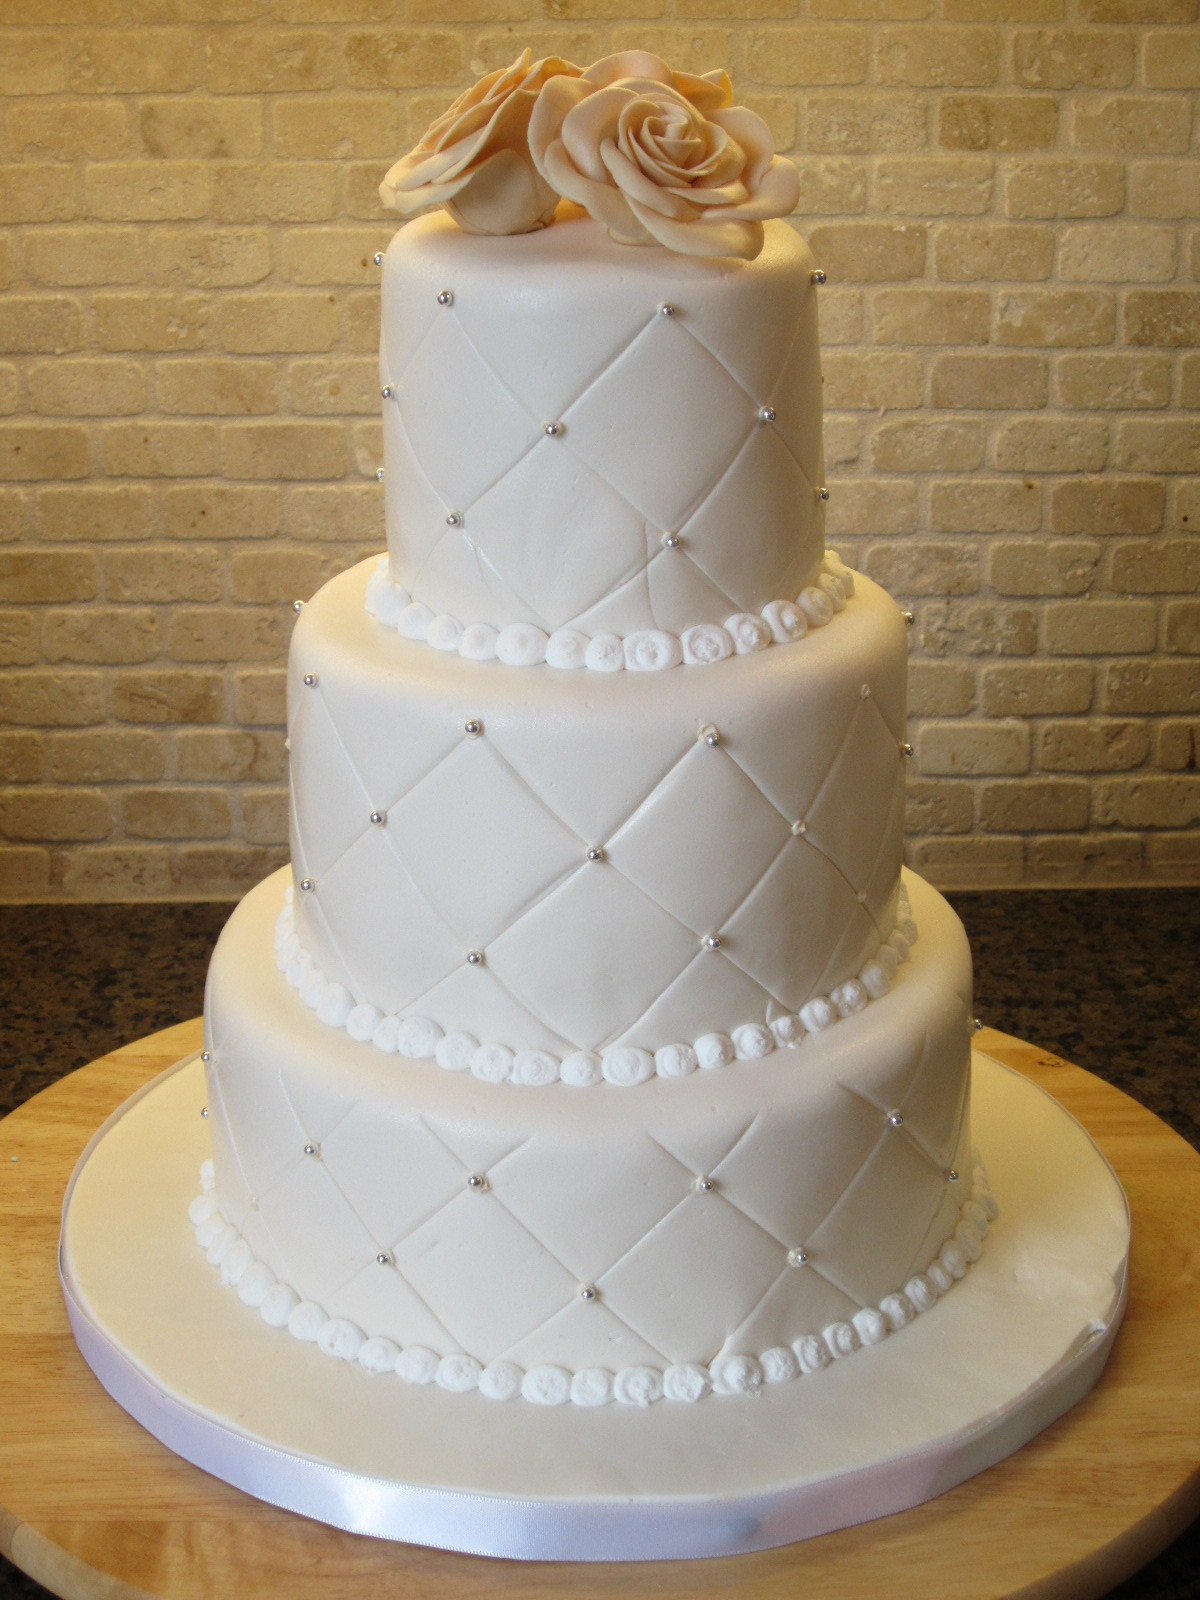 Top Wedding Cakes  Top 20 wedding cake idea trends and designs 2017